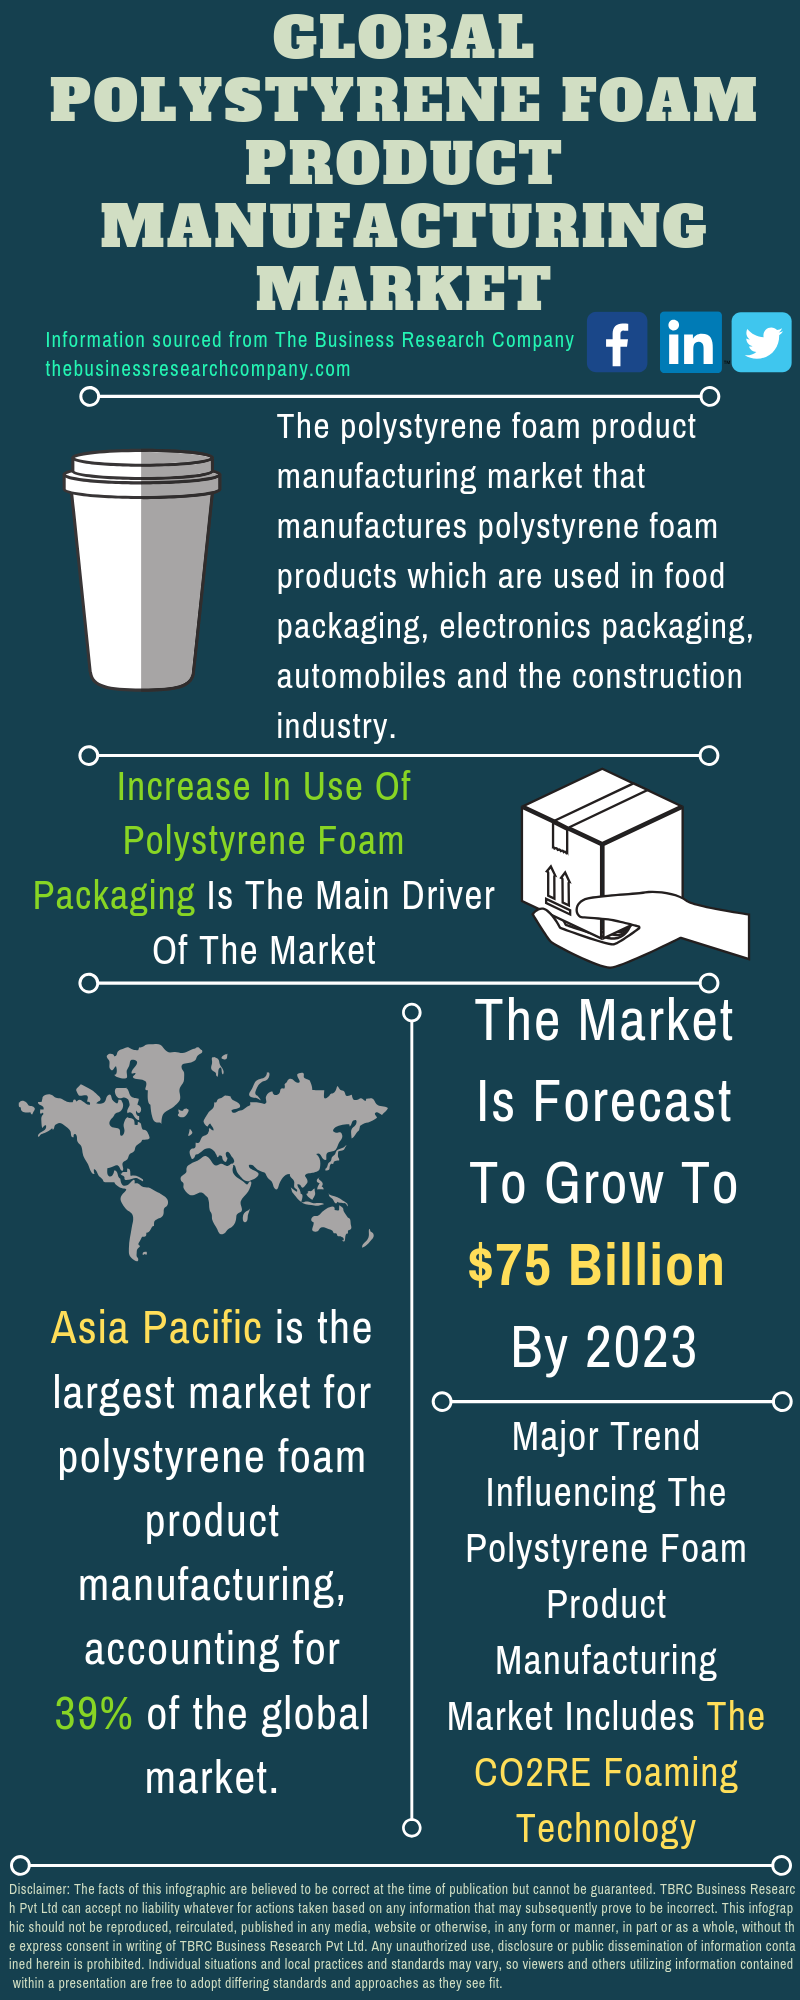 Polystyrene Foam Product Manufacturing Market